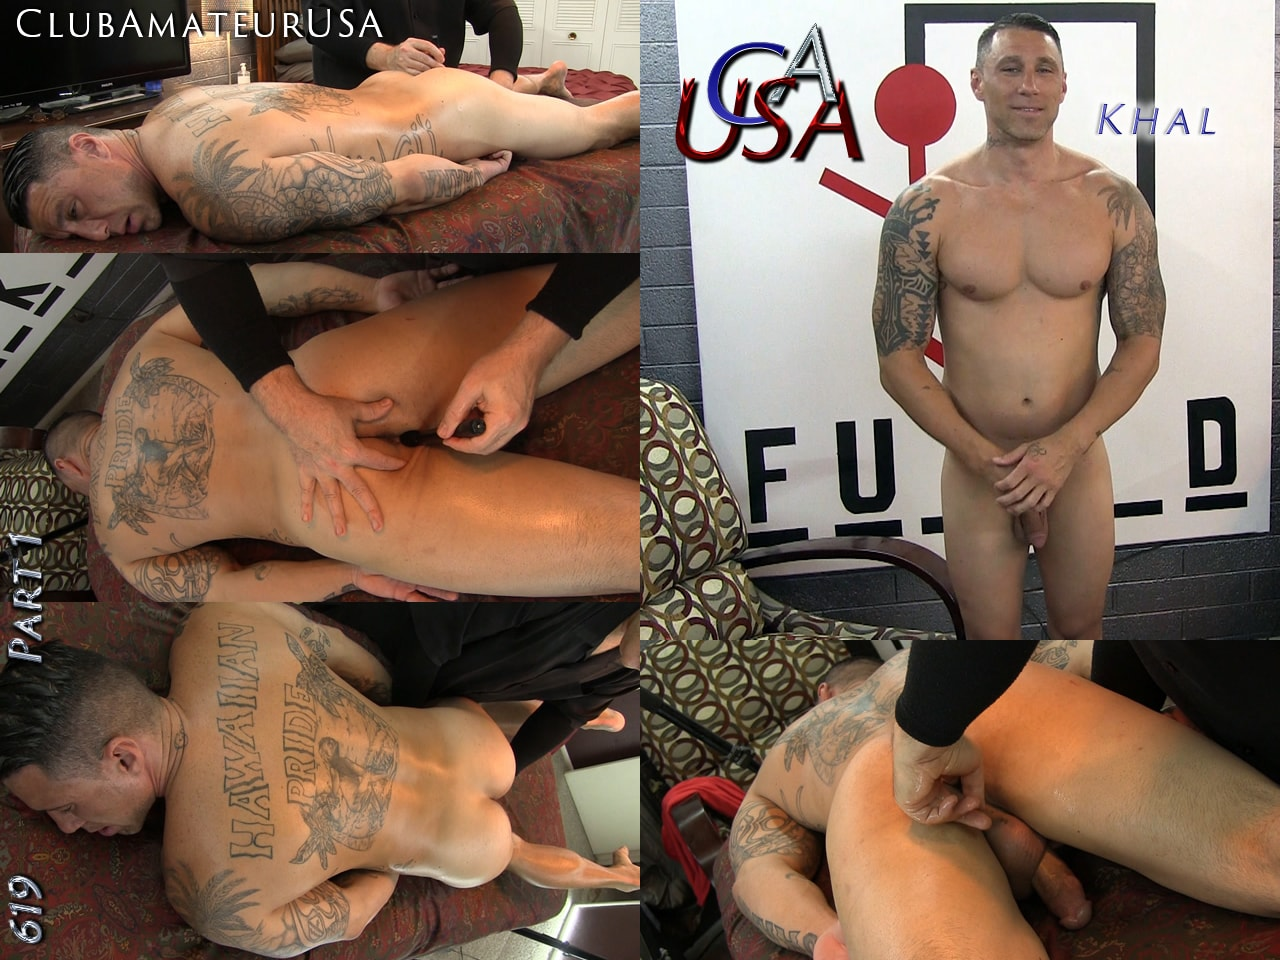 CAUSA 619 Khal - Part 1 - ClubAmateurUSA Asexual dating south africa